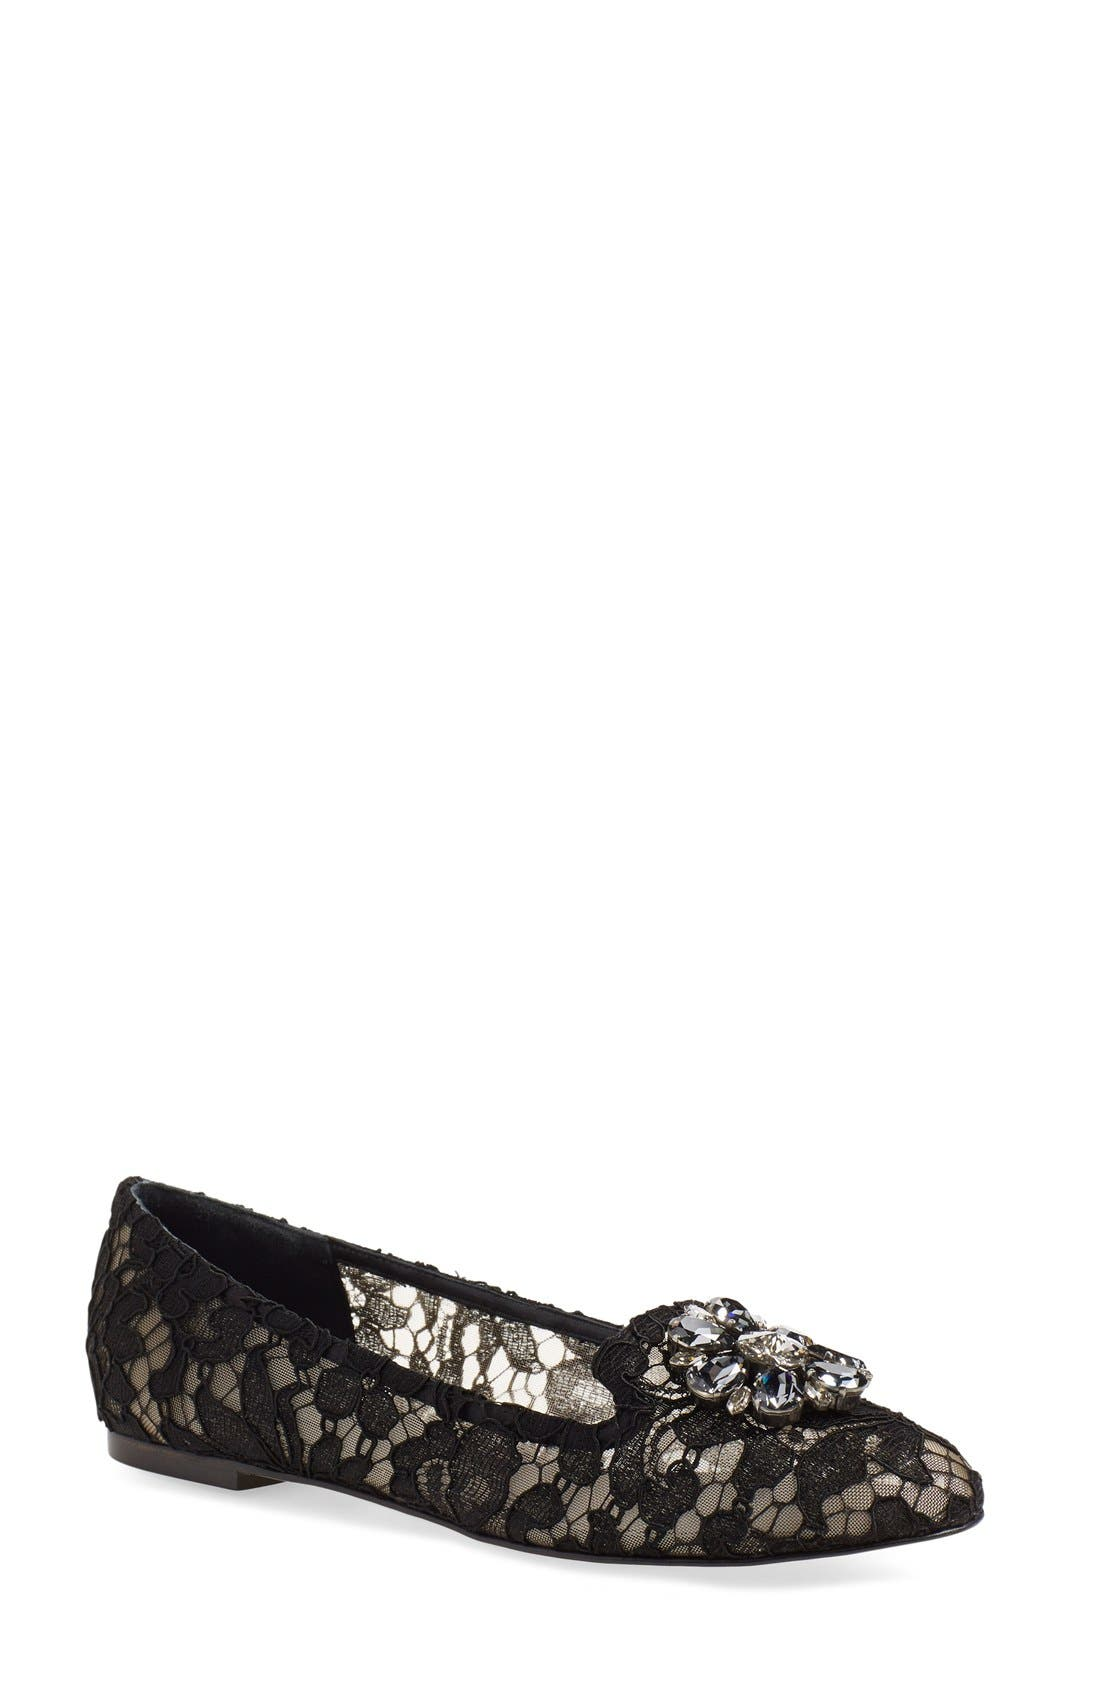 DOLCE&GABBANA, Crystal & Lace Pointy Toe Flat, Main thumbnail 1, color, 001